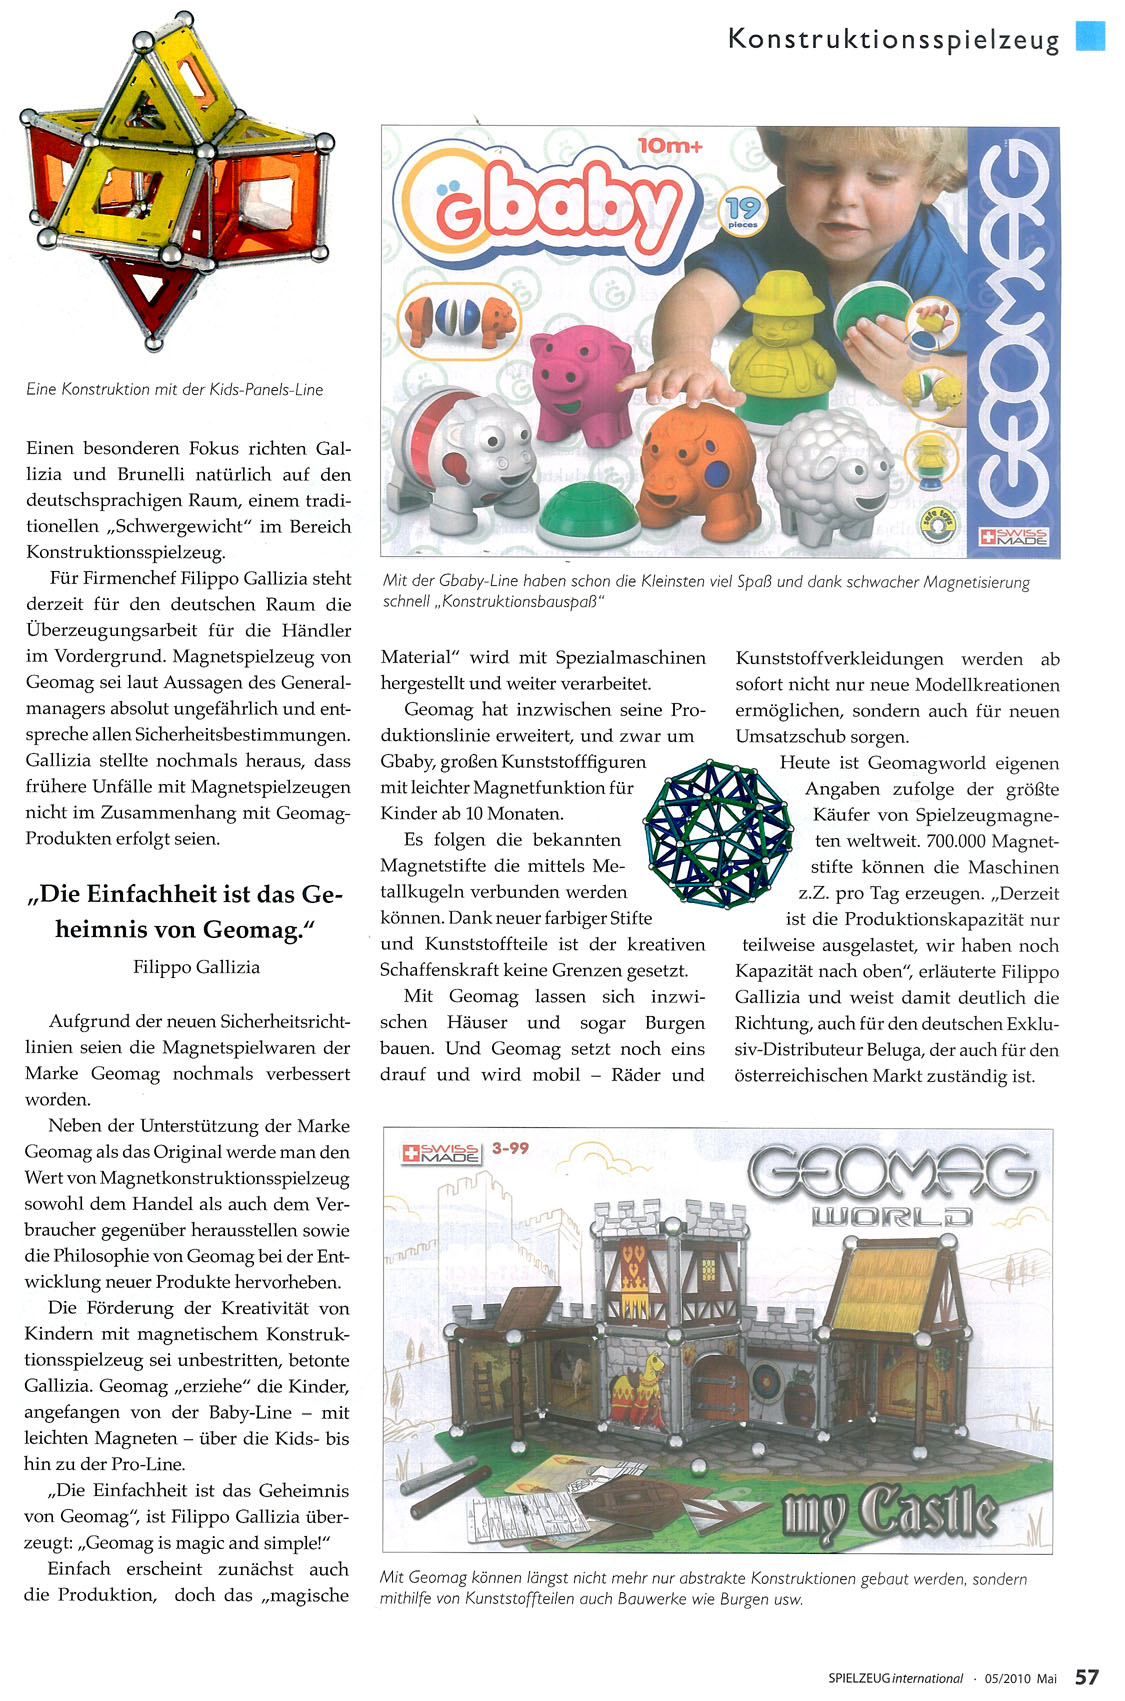 Geomag article page 2 - Spielzeug International May 2010.jpg